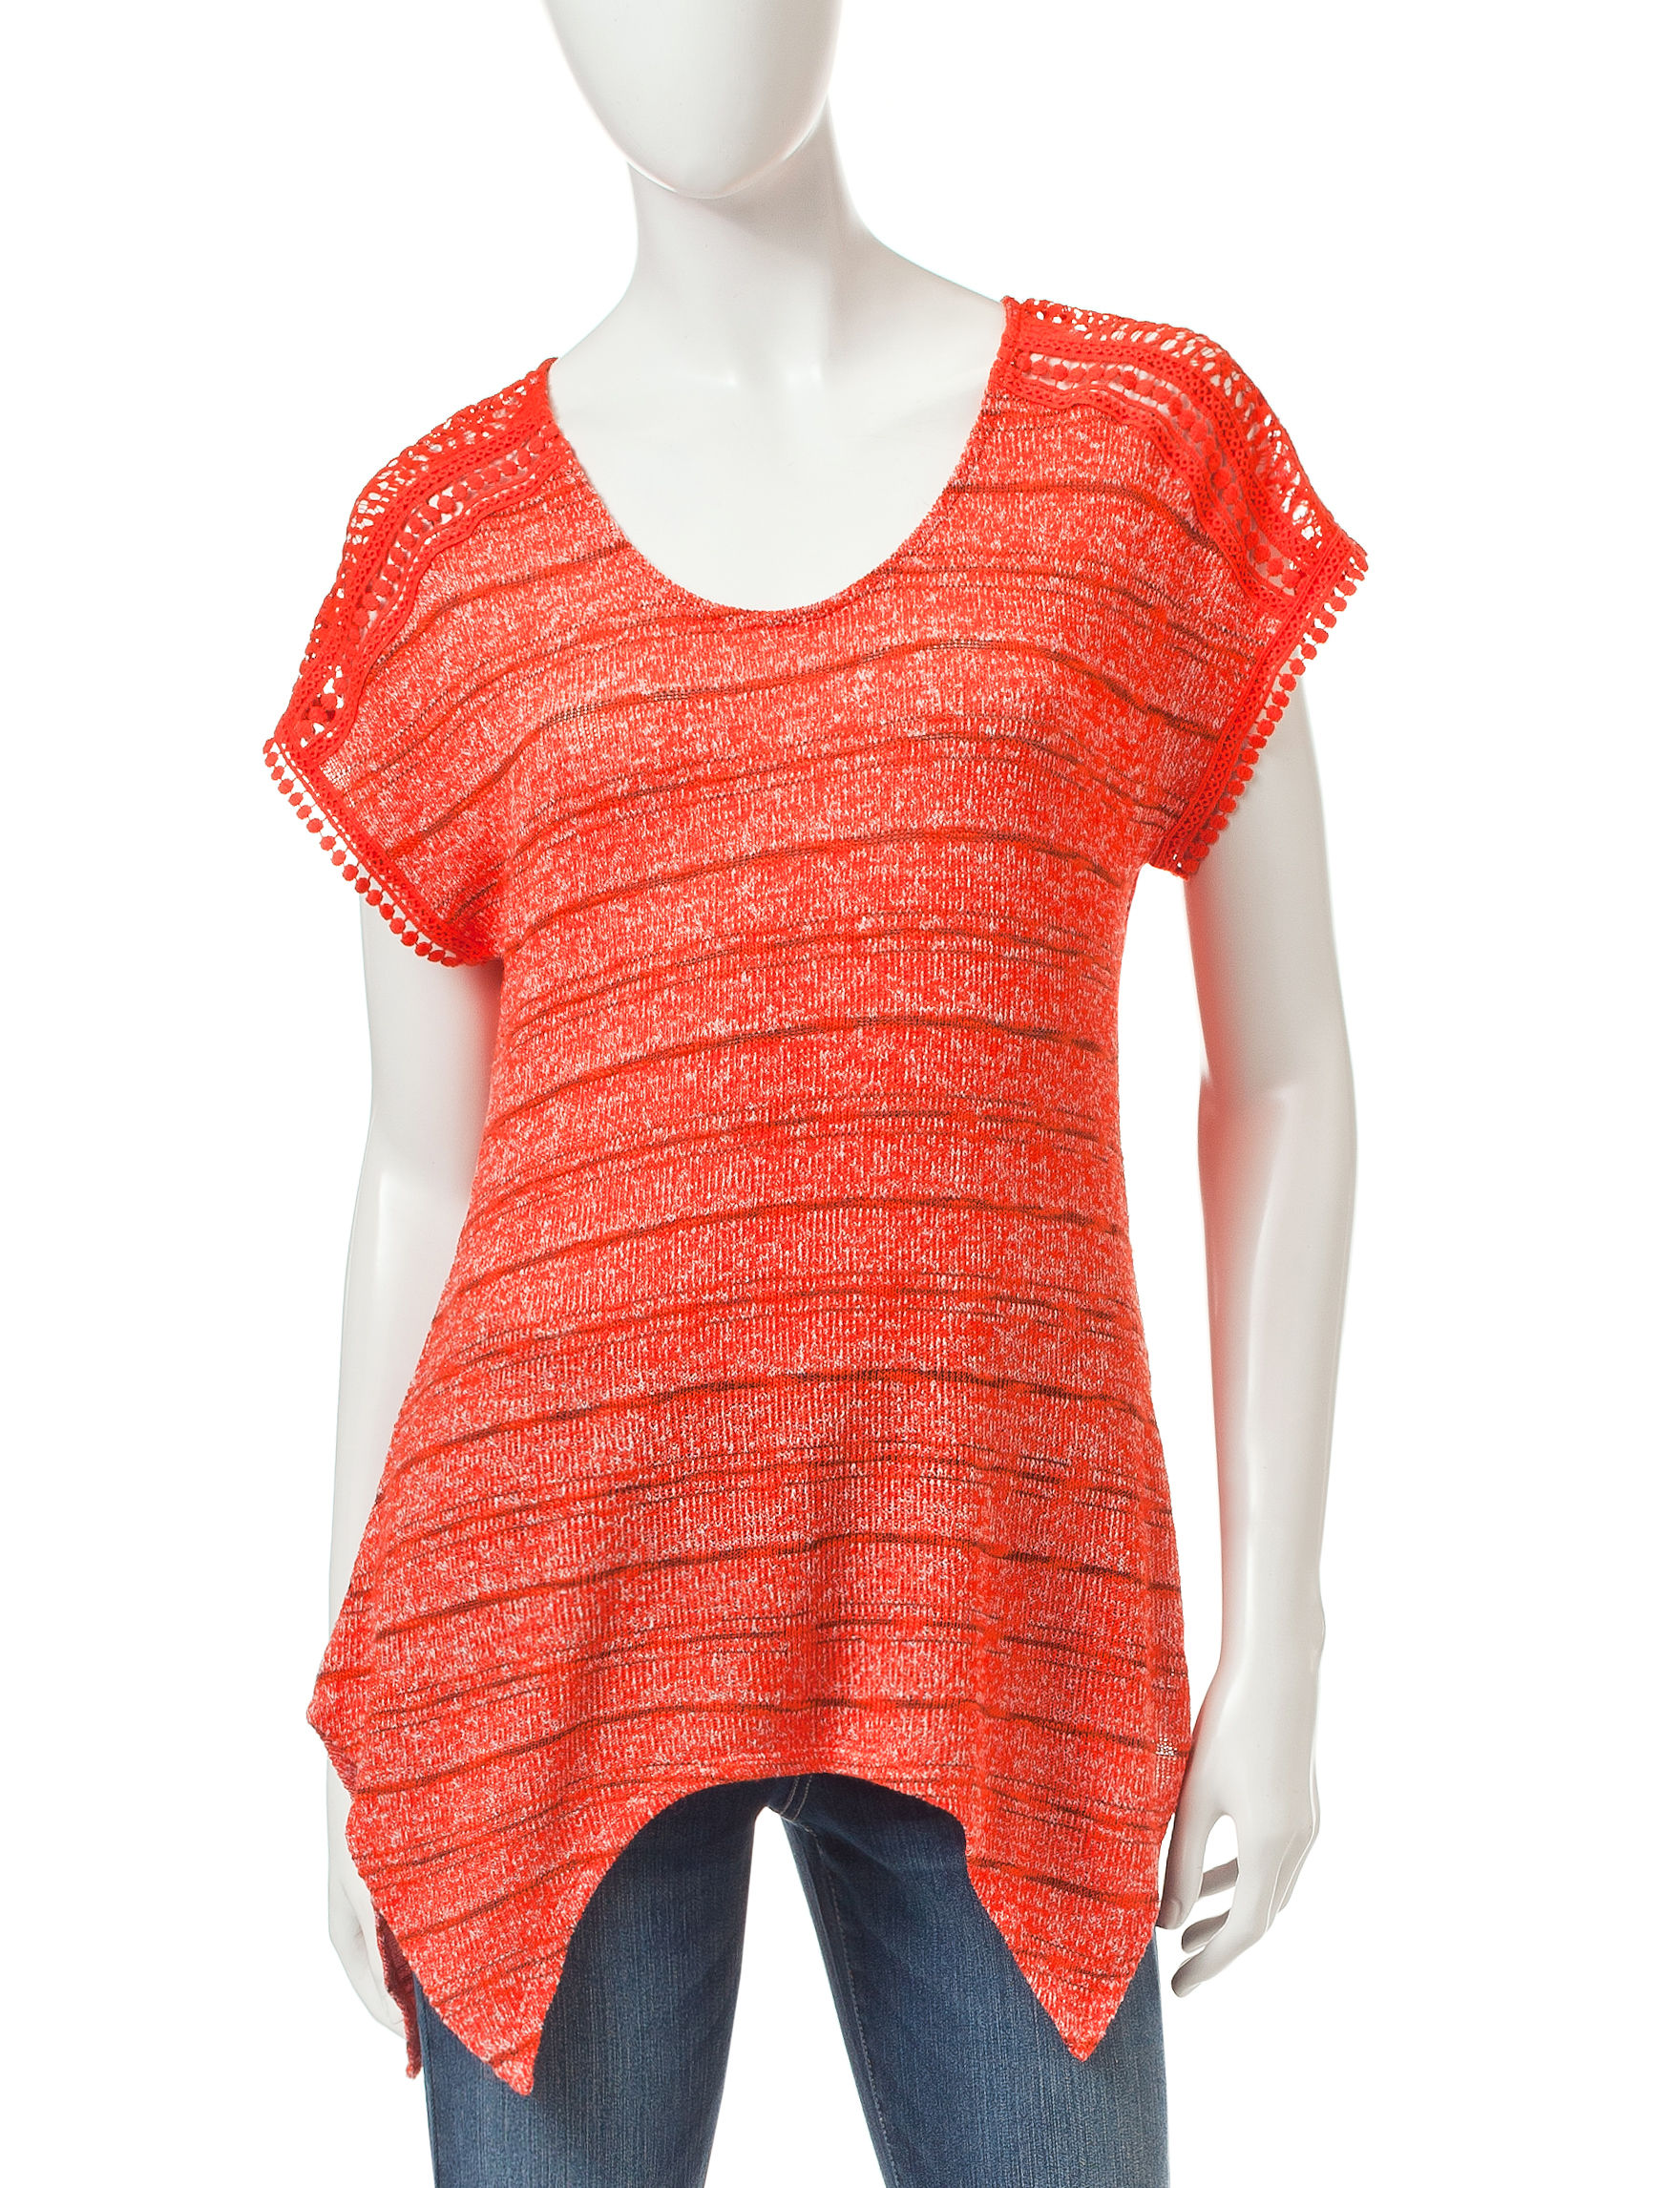 Signature Studio Orange Shirts & Blouses